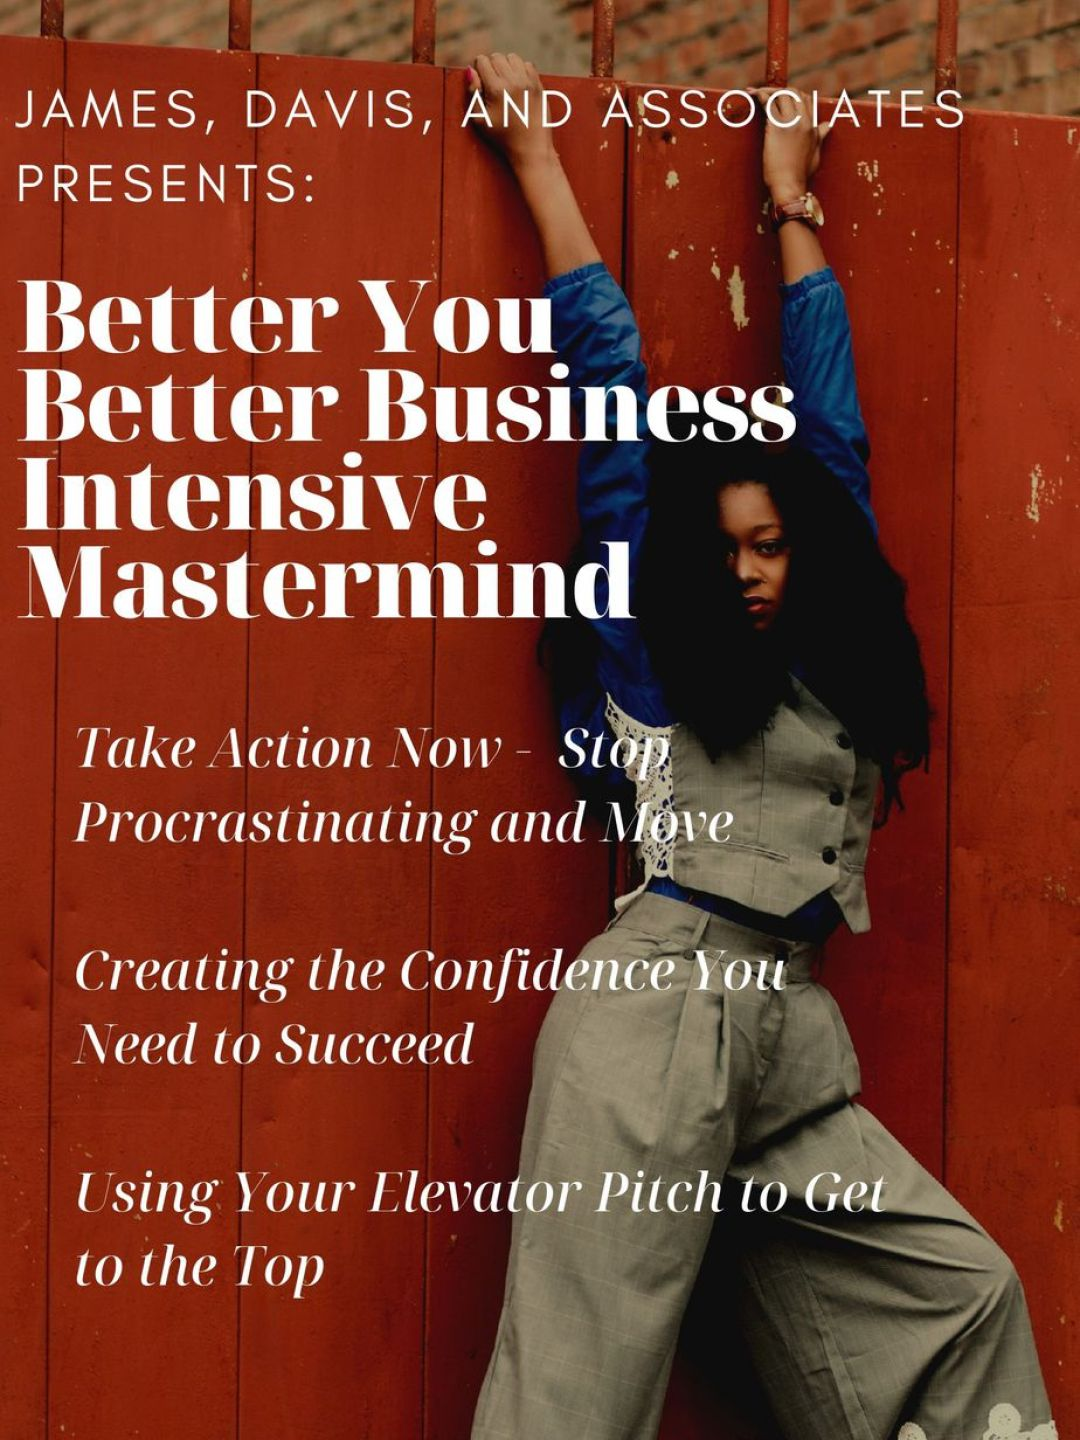 Better You Better Business Mastermind